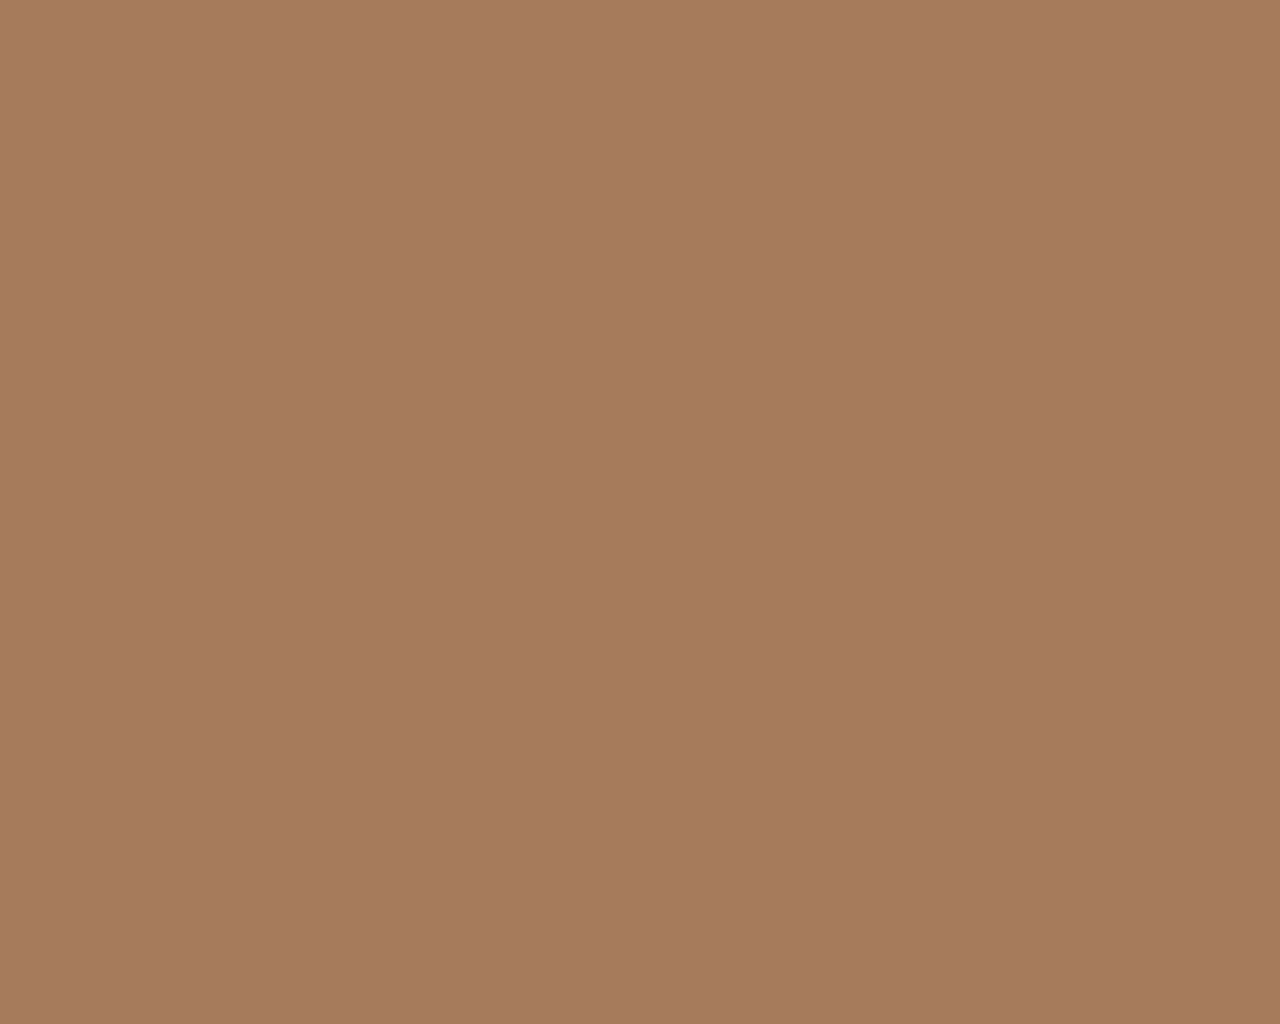 1280x1024 French Beige Solid Color Background